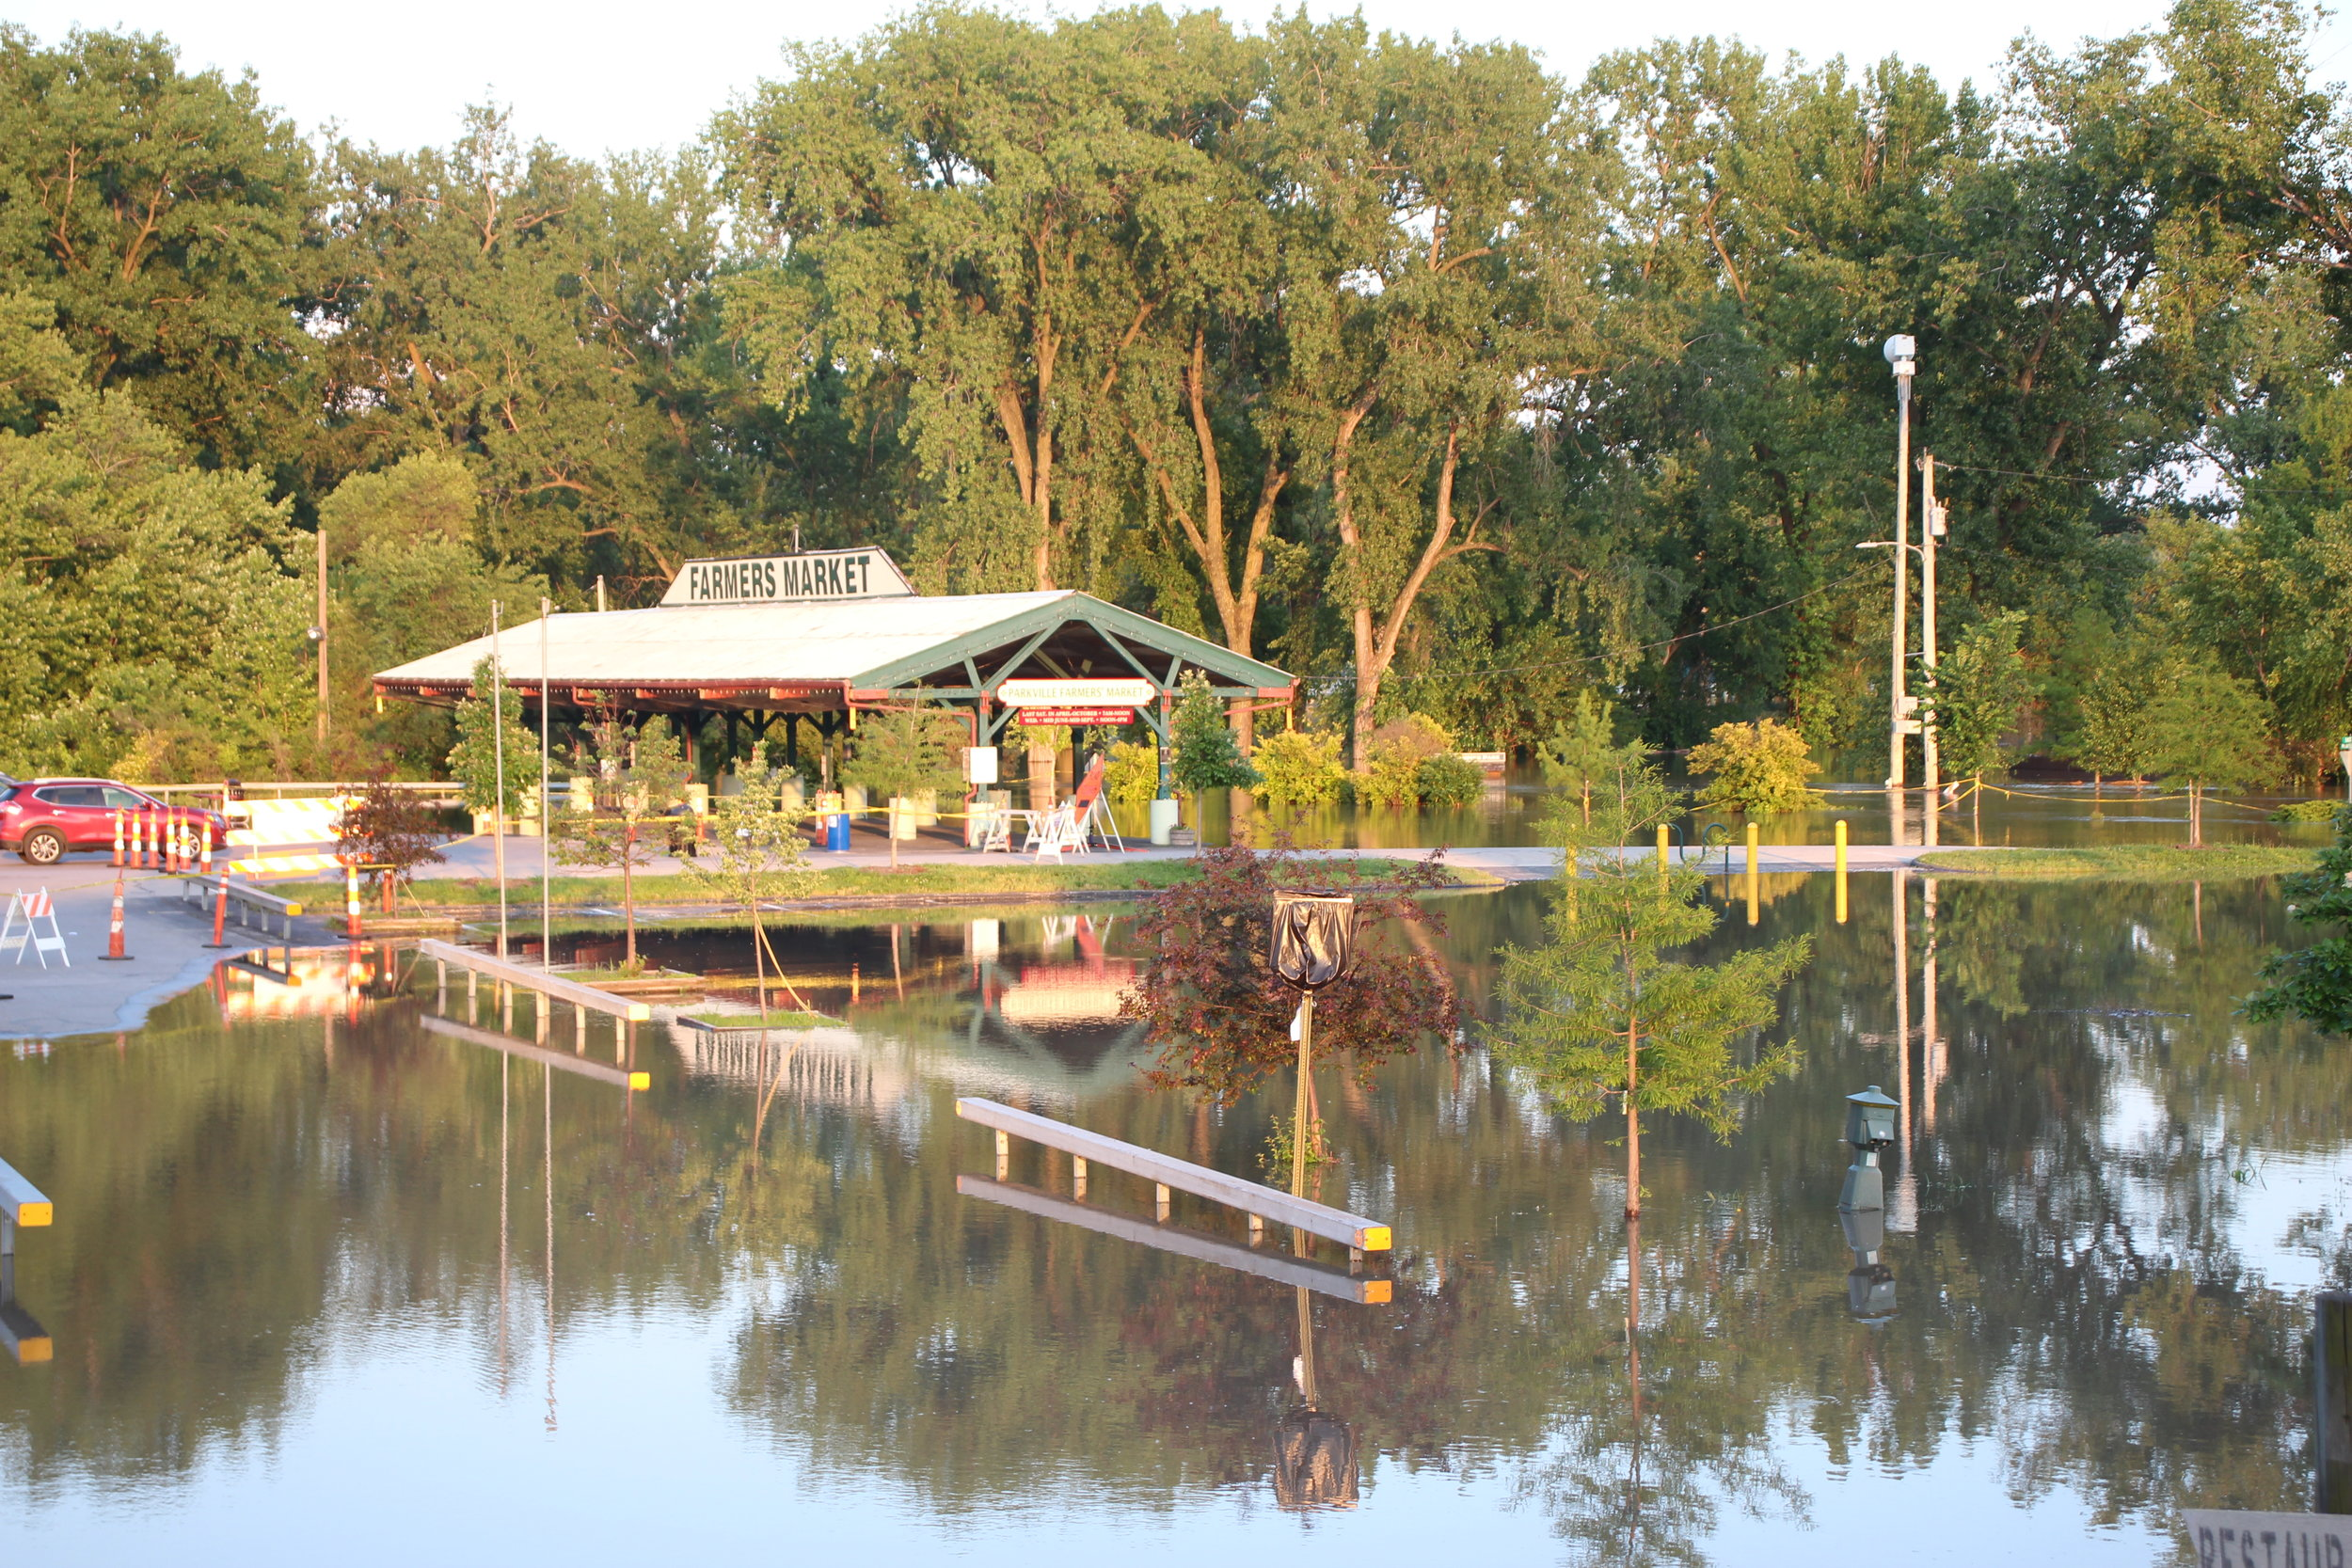 Platte and English Landing parks were flooded again last week, with flood waters rising up into the city parking lots and to the Parkville Farmer's Market pavilion. These photos were taken Saturday, June 1 at the Missouri River crest near sunset.